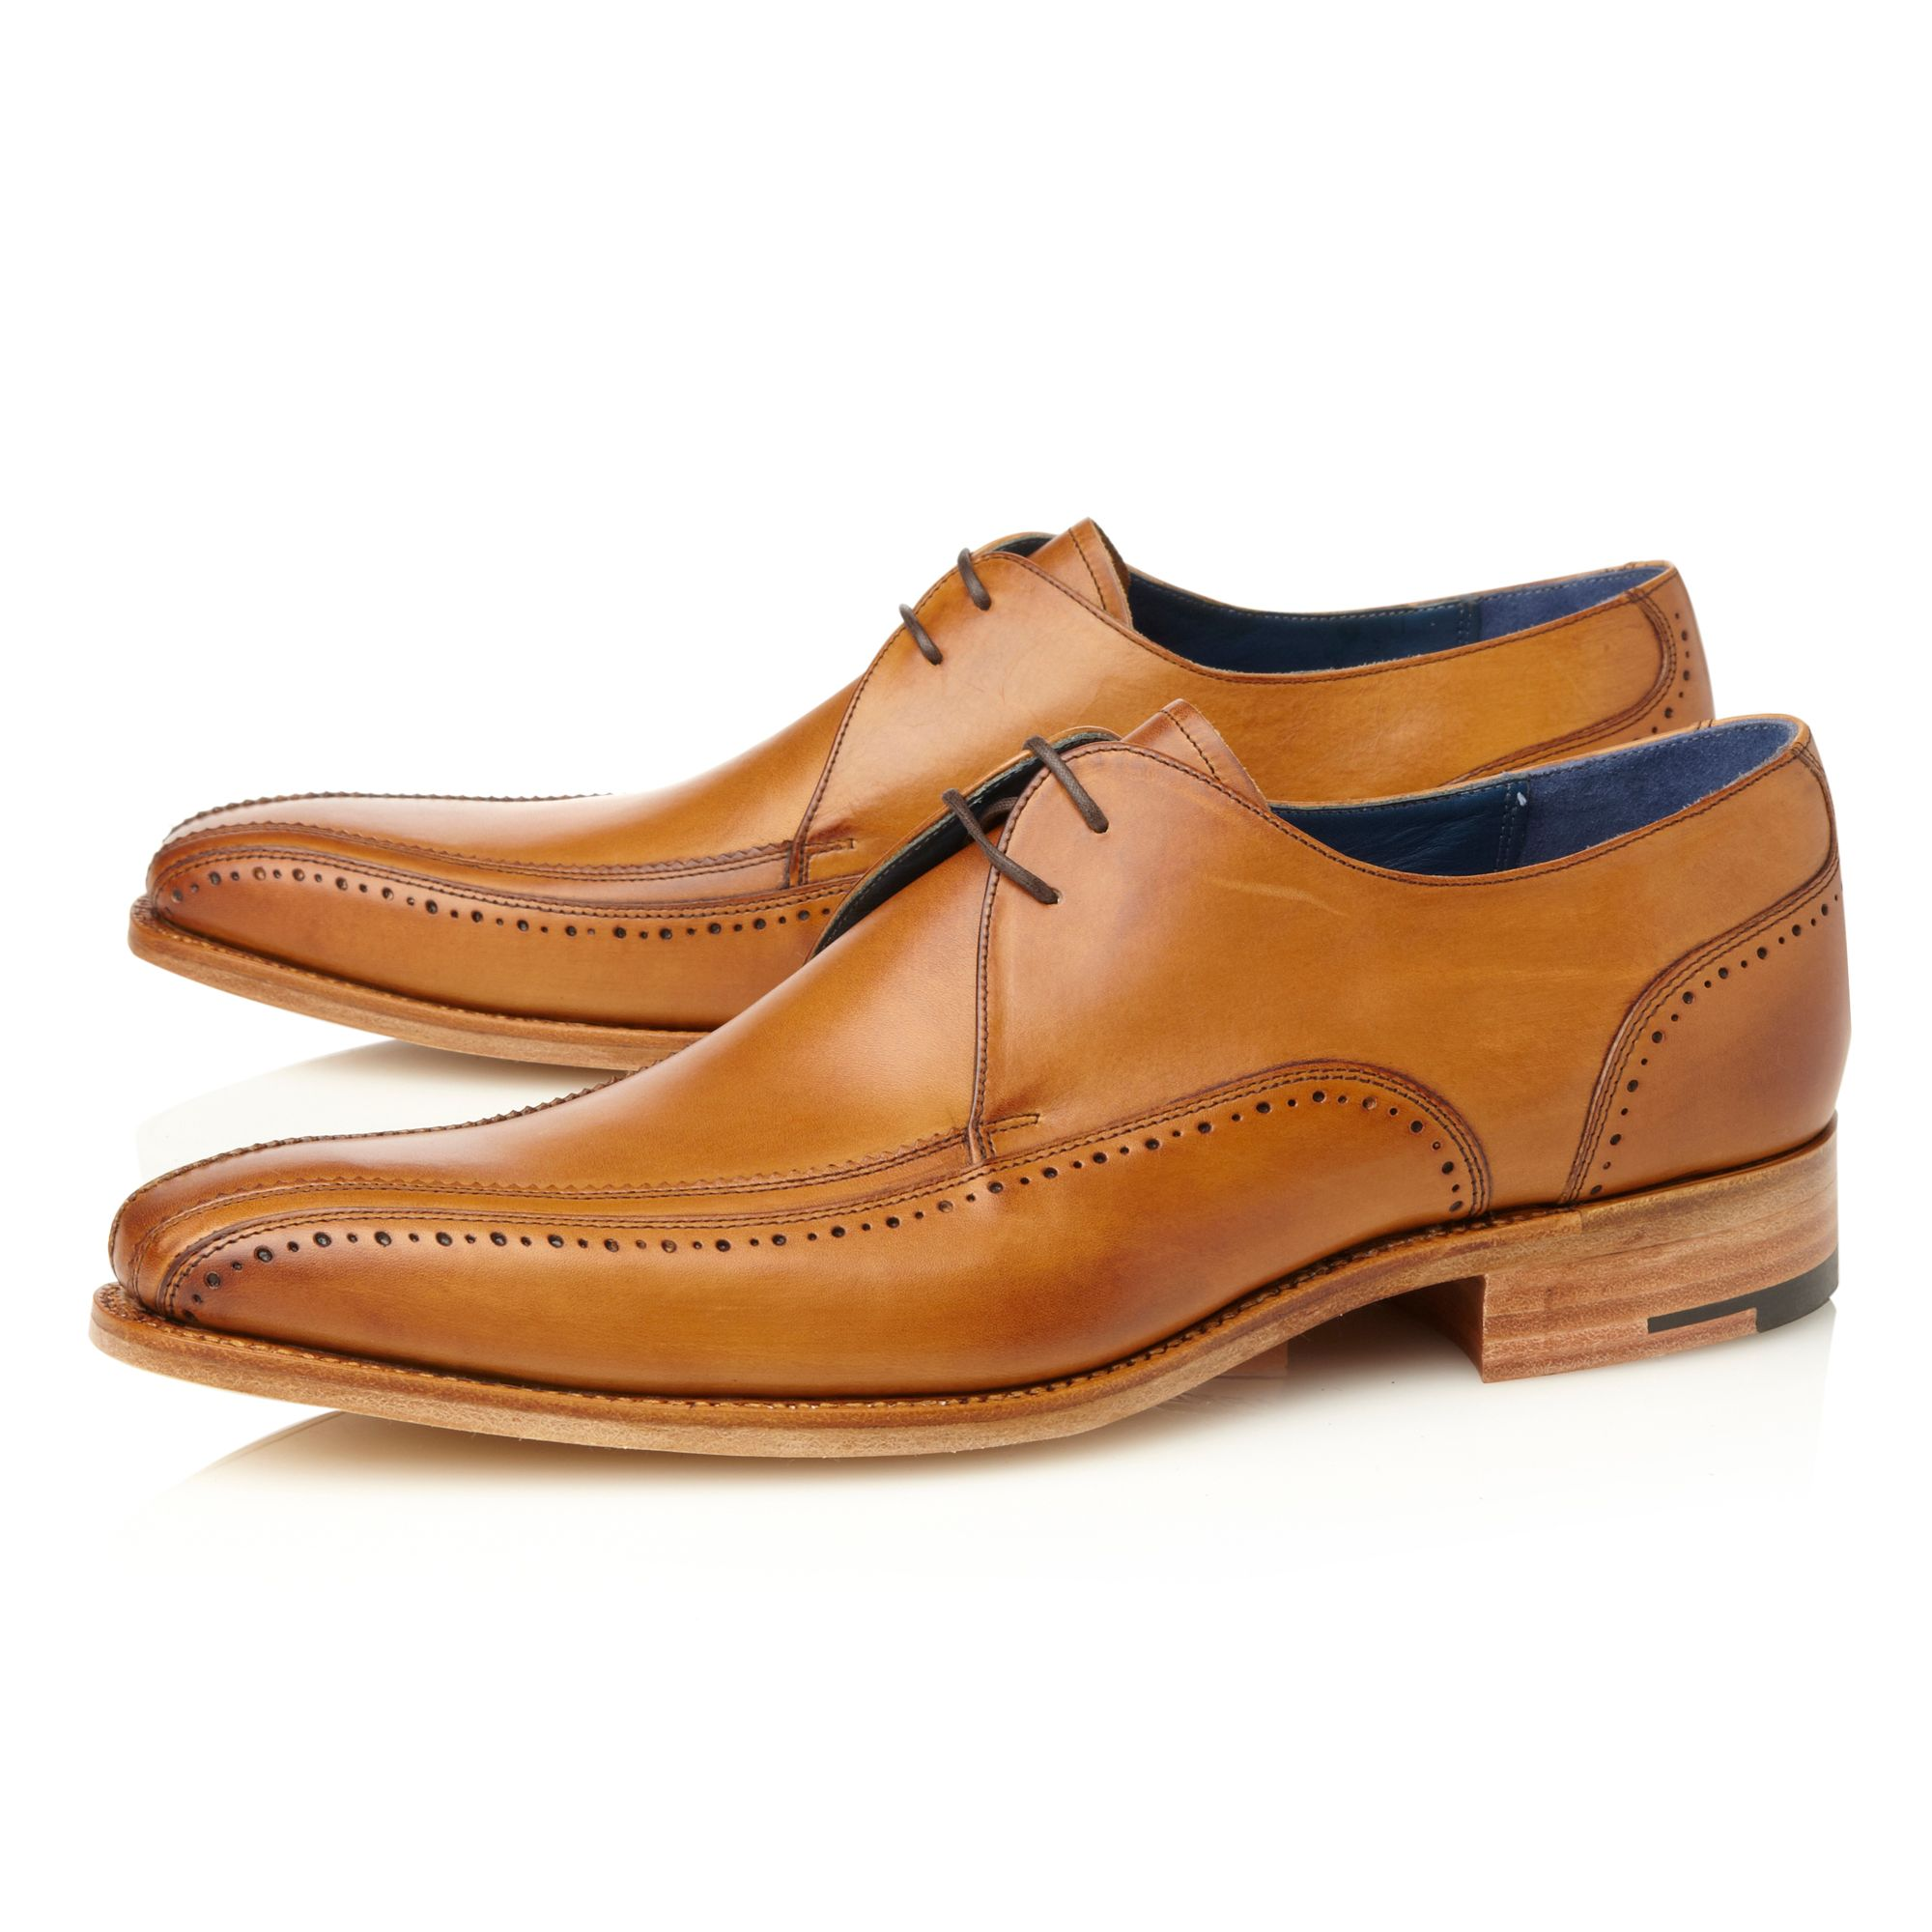 Kerly tramline formal shoes